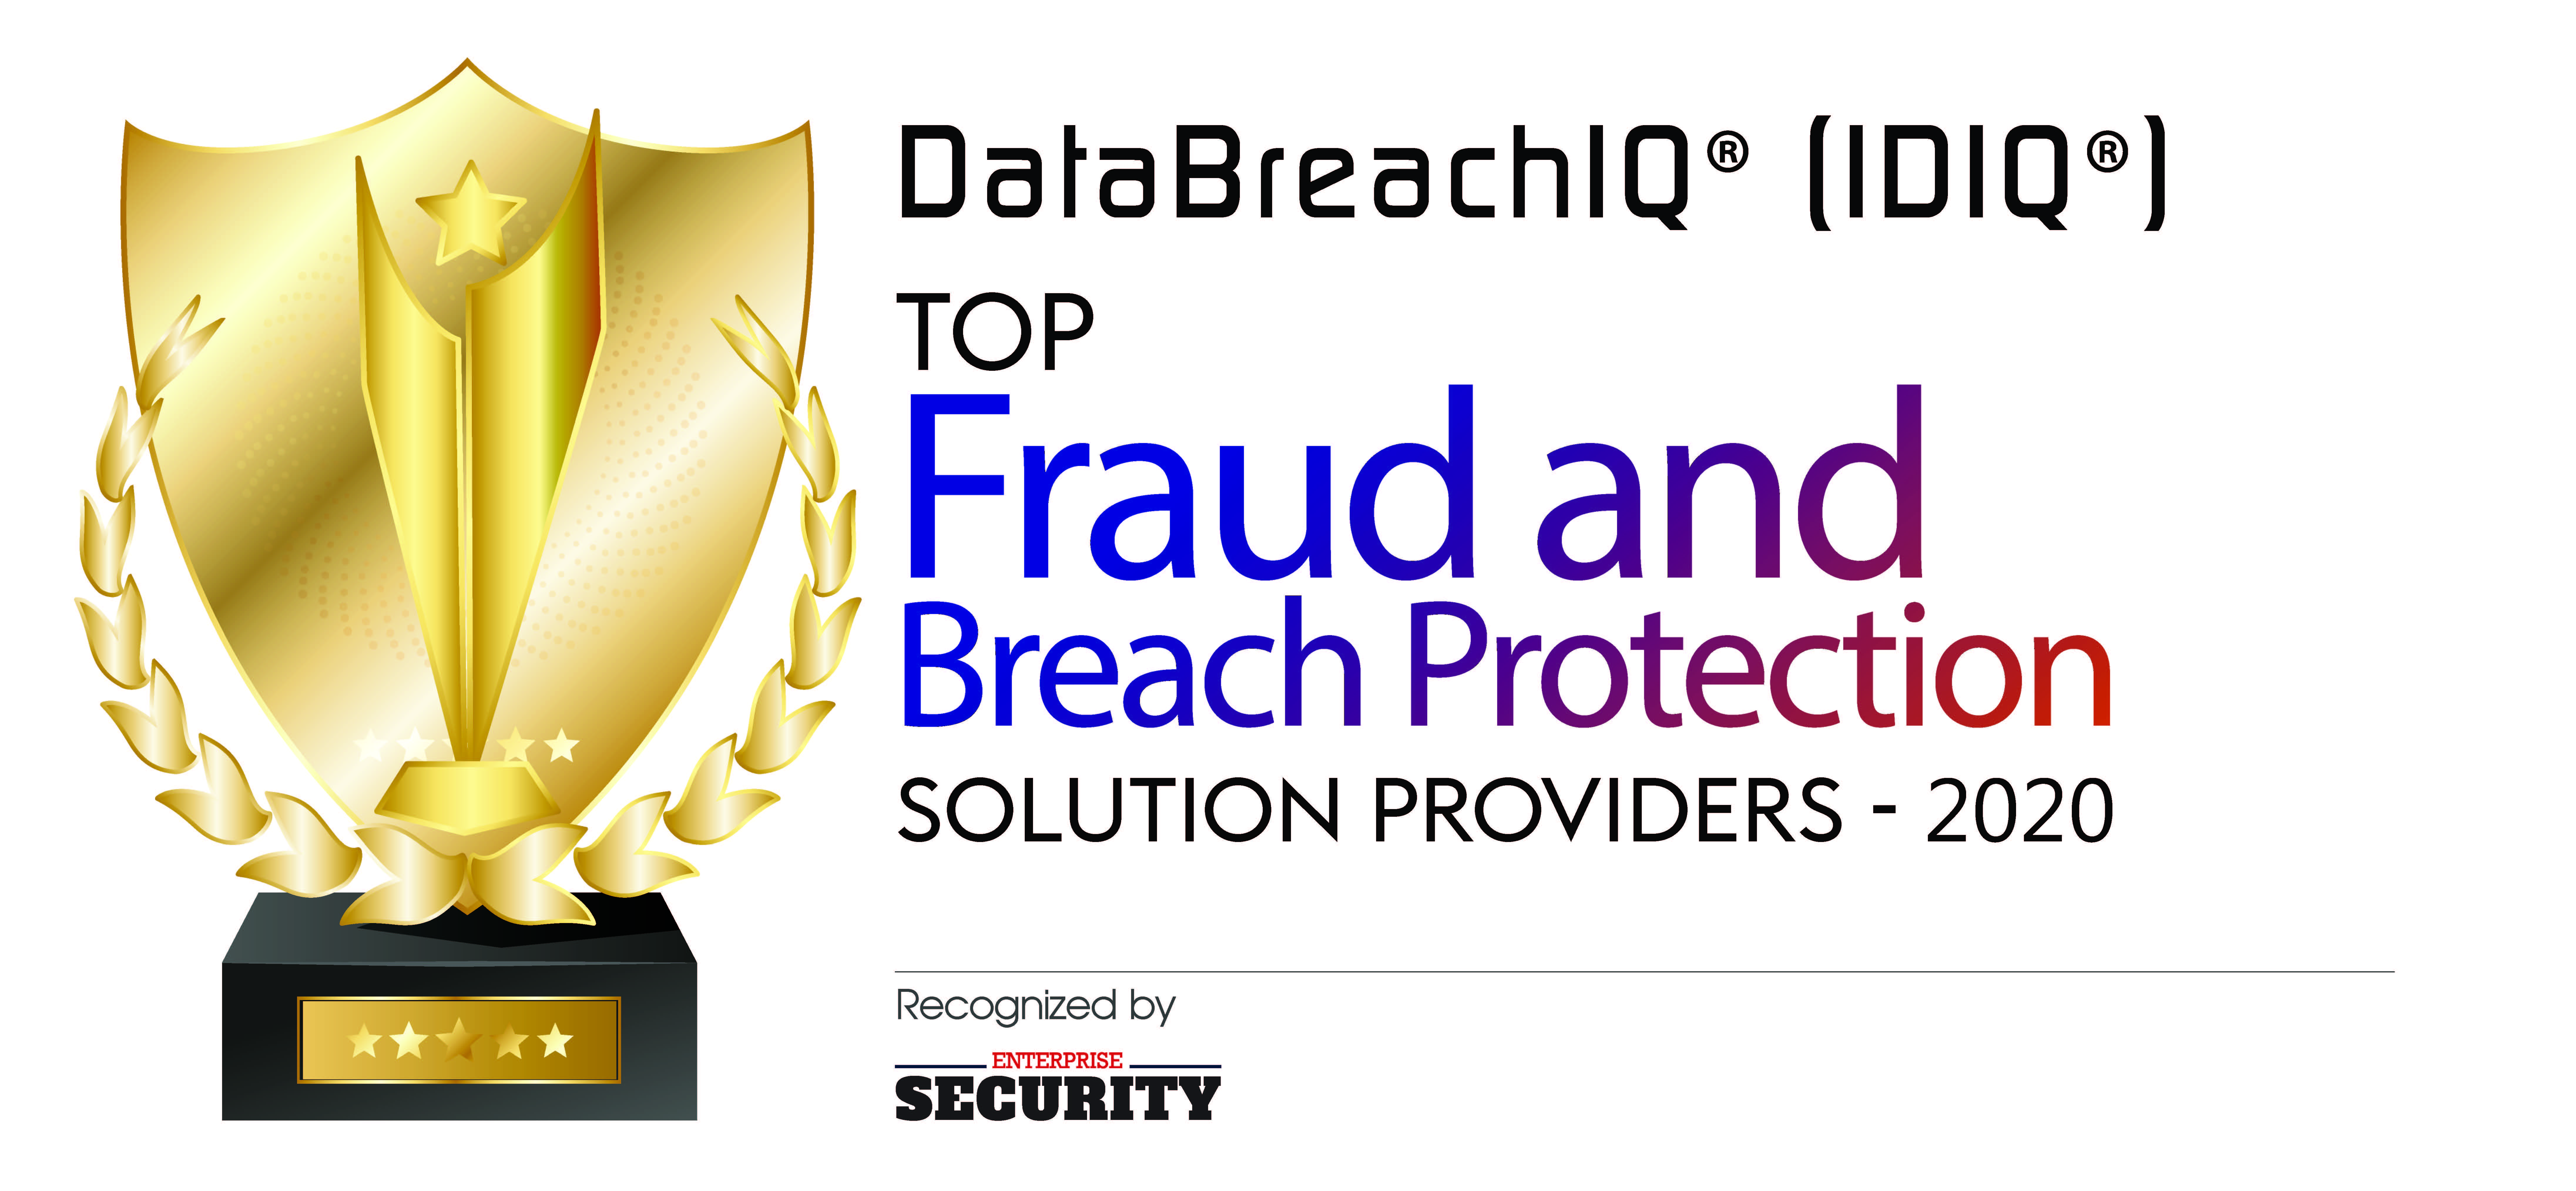 Top 10 Fraud and Breach Protection Solution Companies - 2020